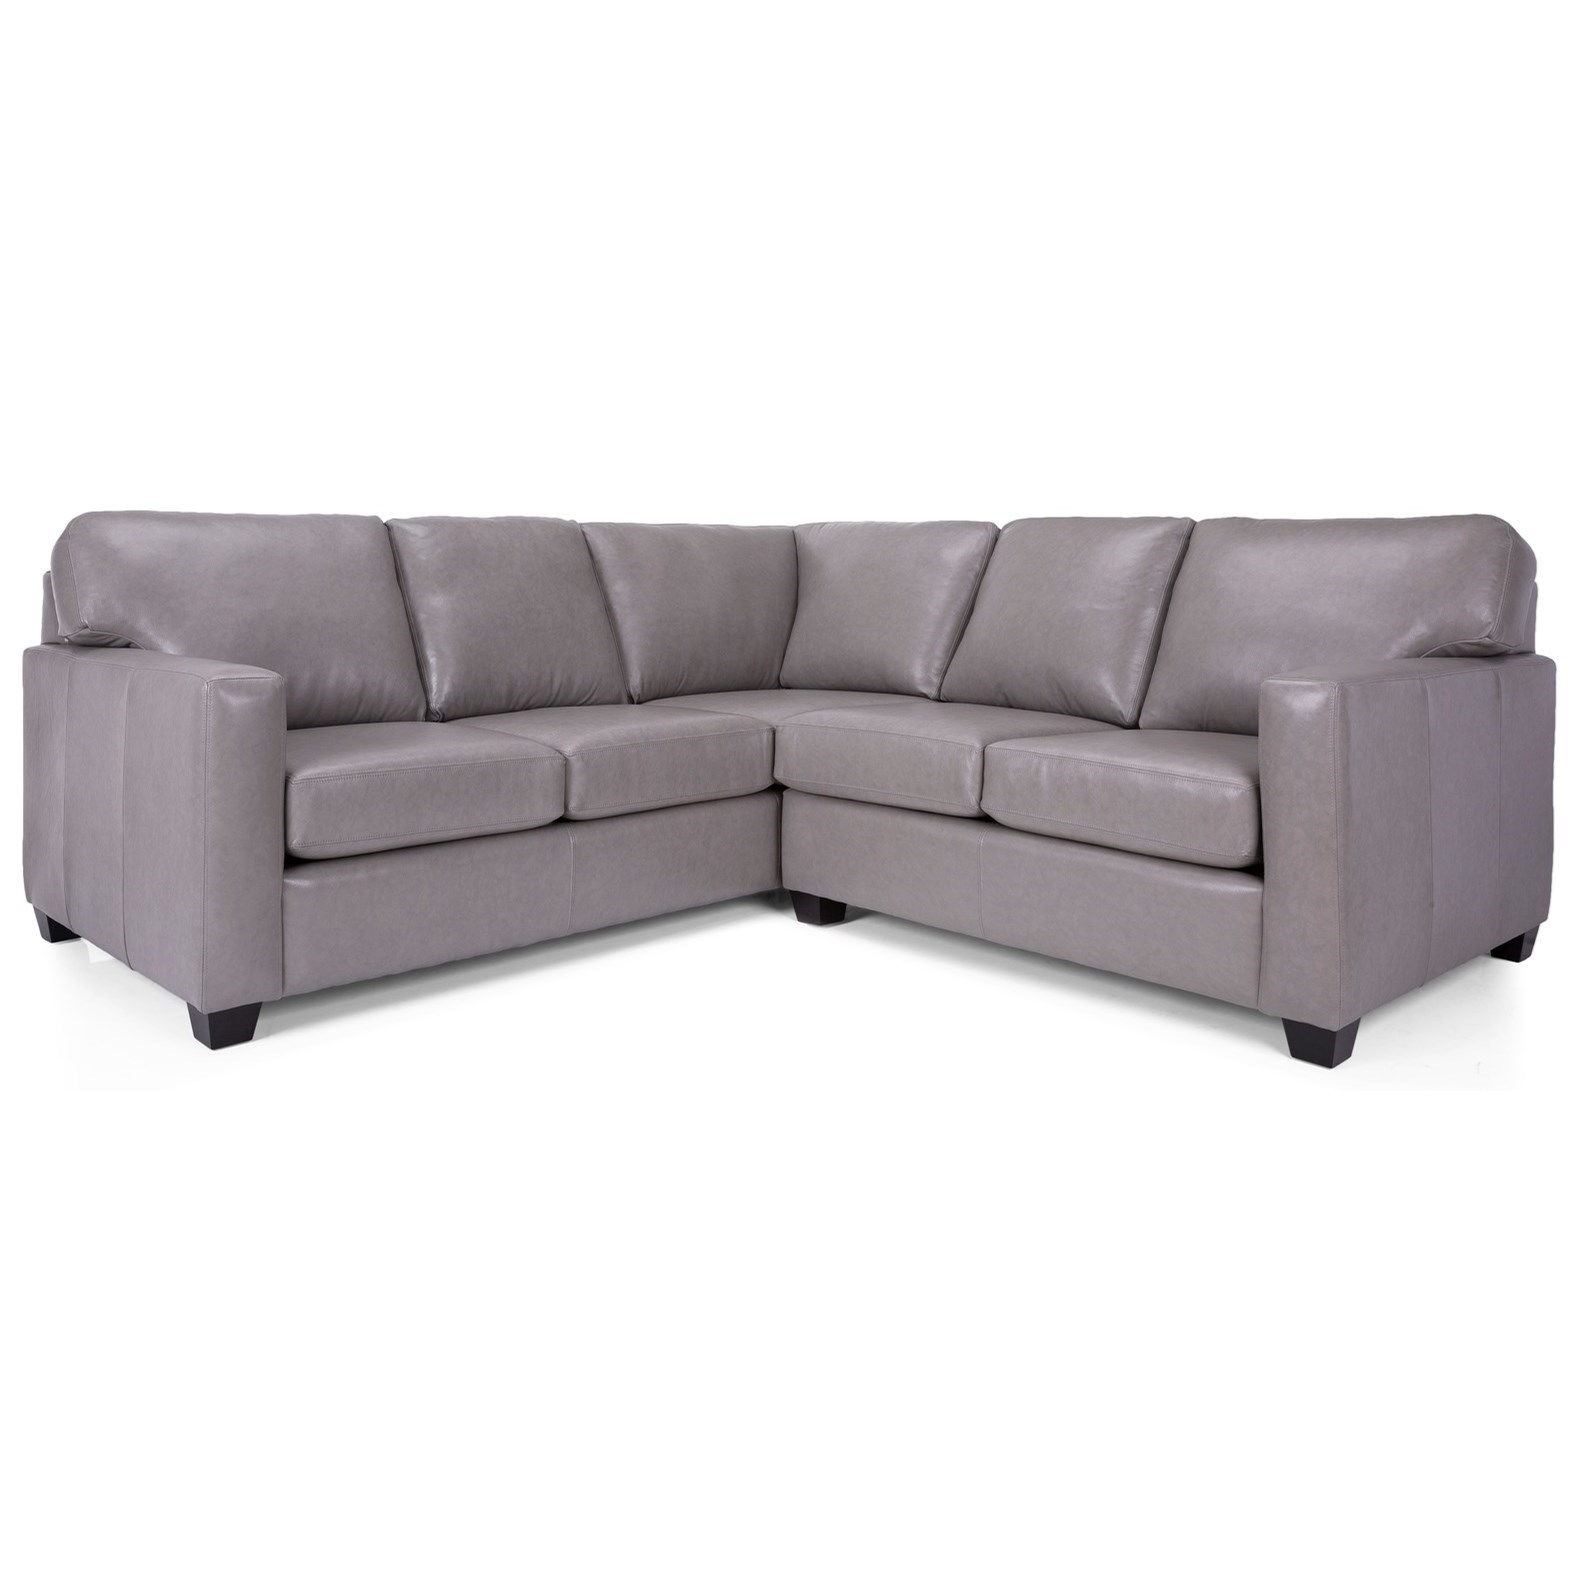 2541 Sectional Sofa by Decor-Rest at Rooms for Less